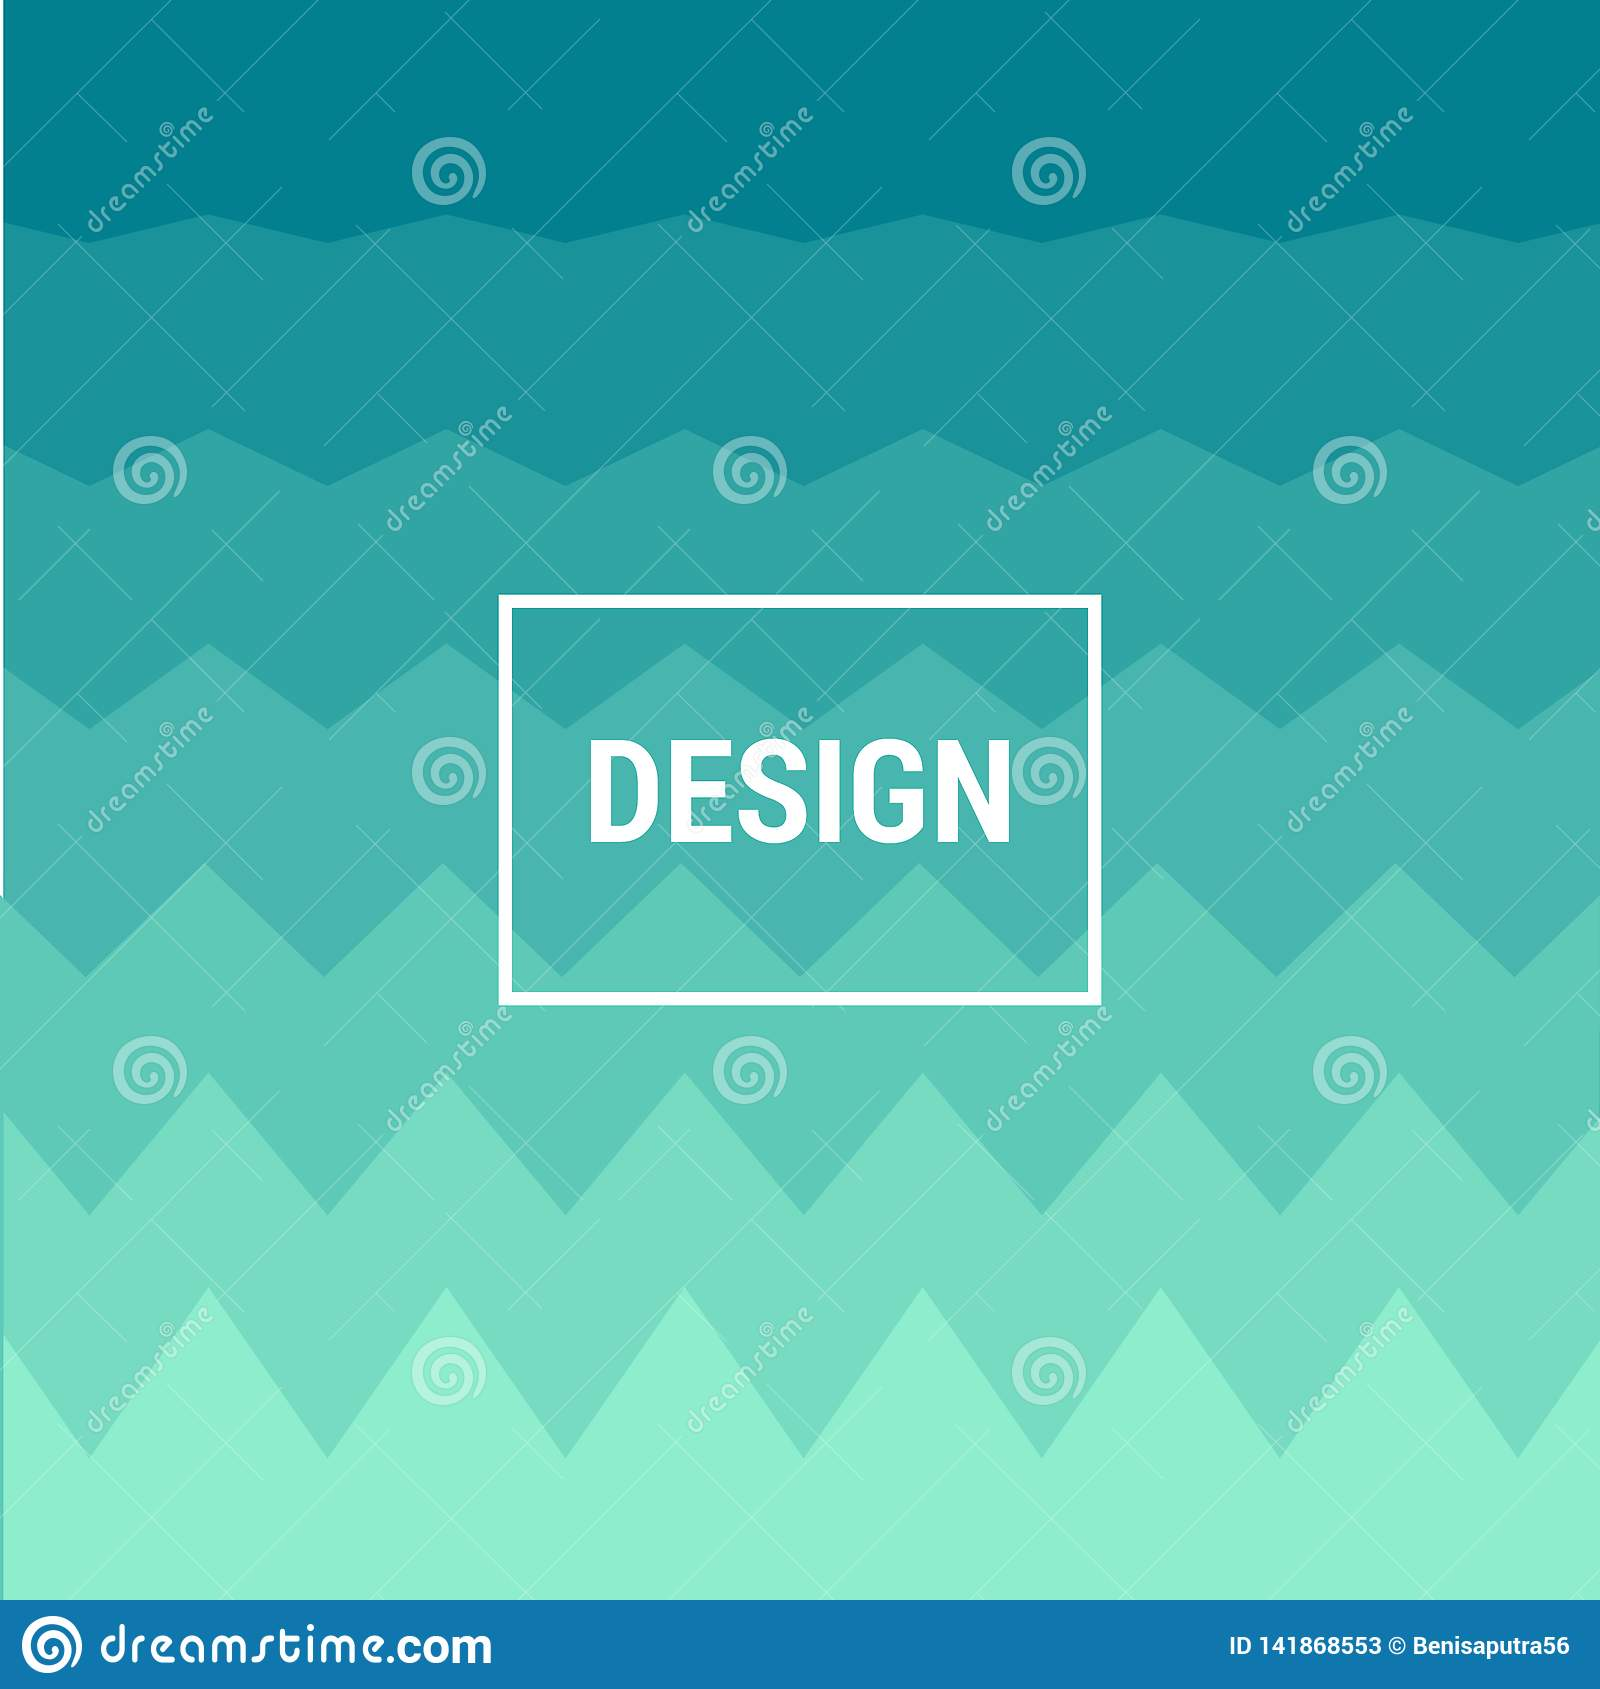 Abstract blue geometric zigzag background modern fun hipster background texture design. illustration for web background template